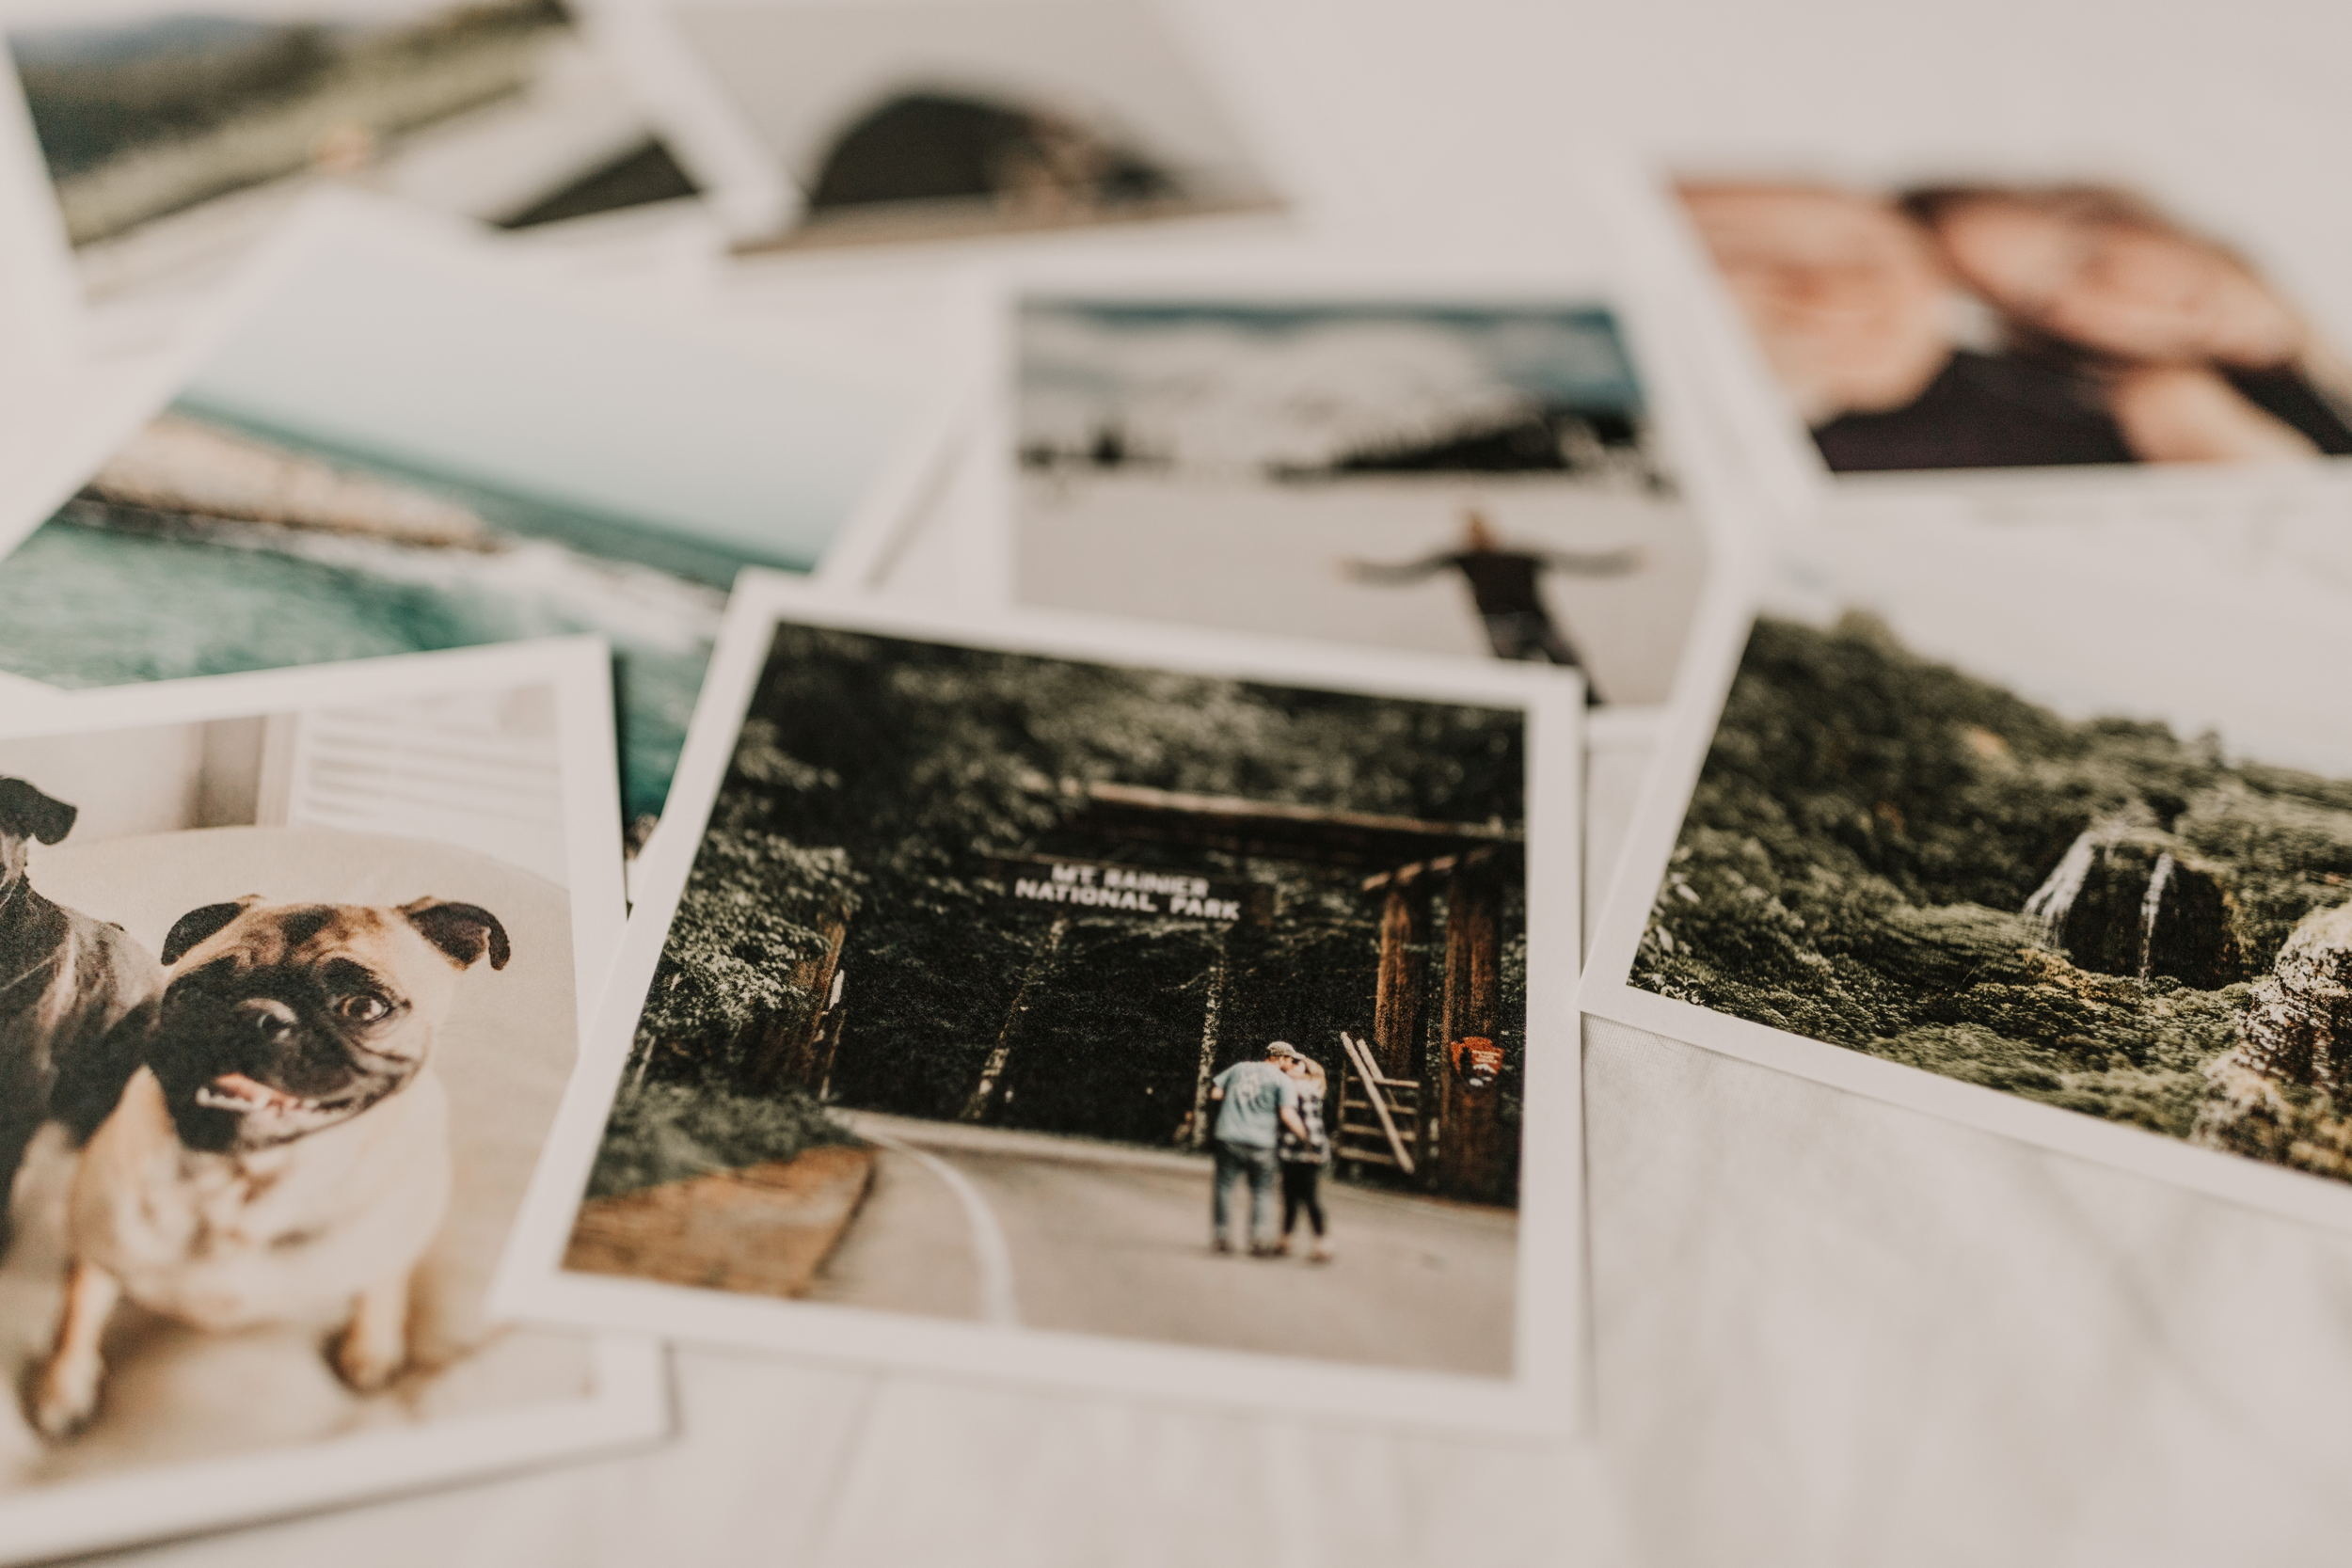 Using images on Squarespace